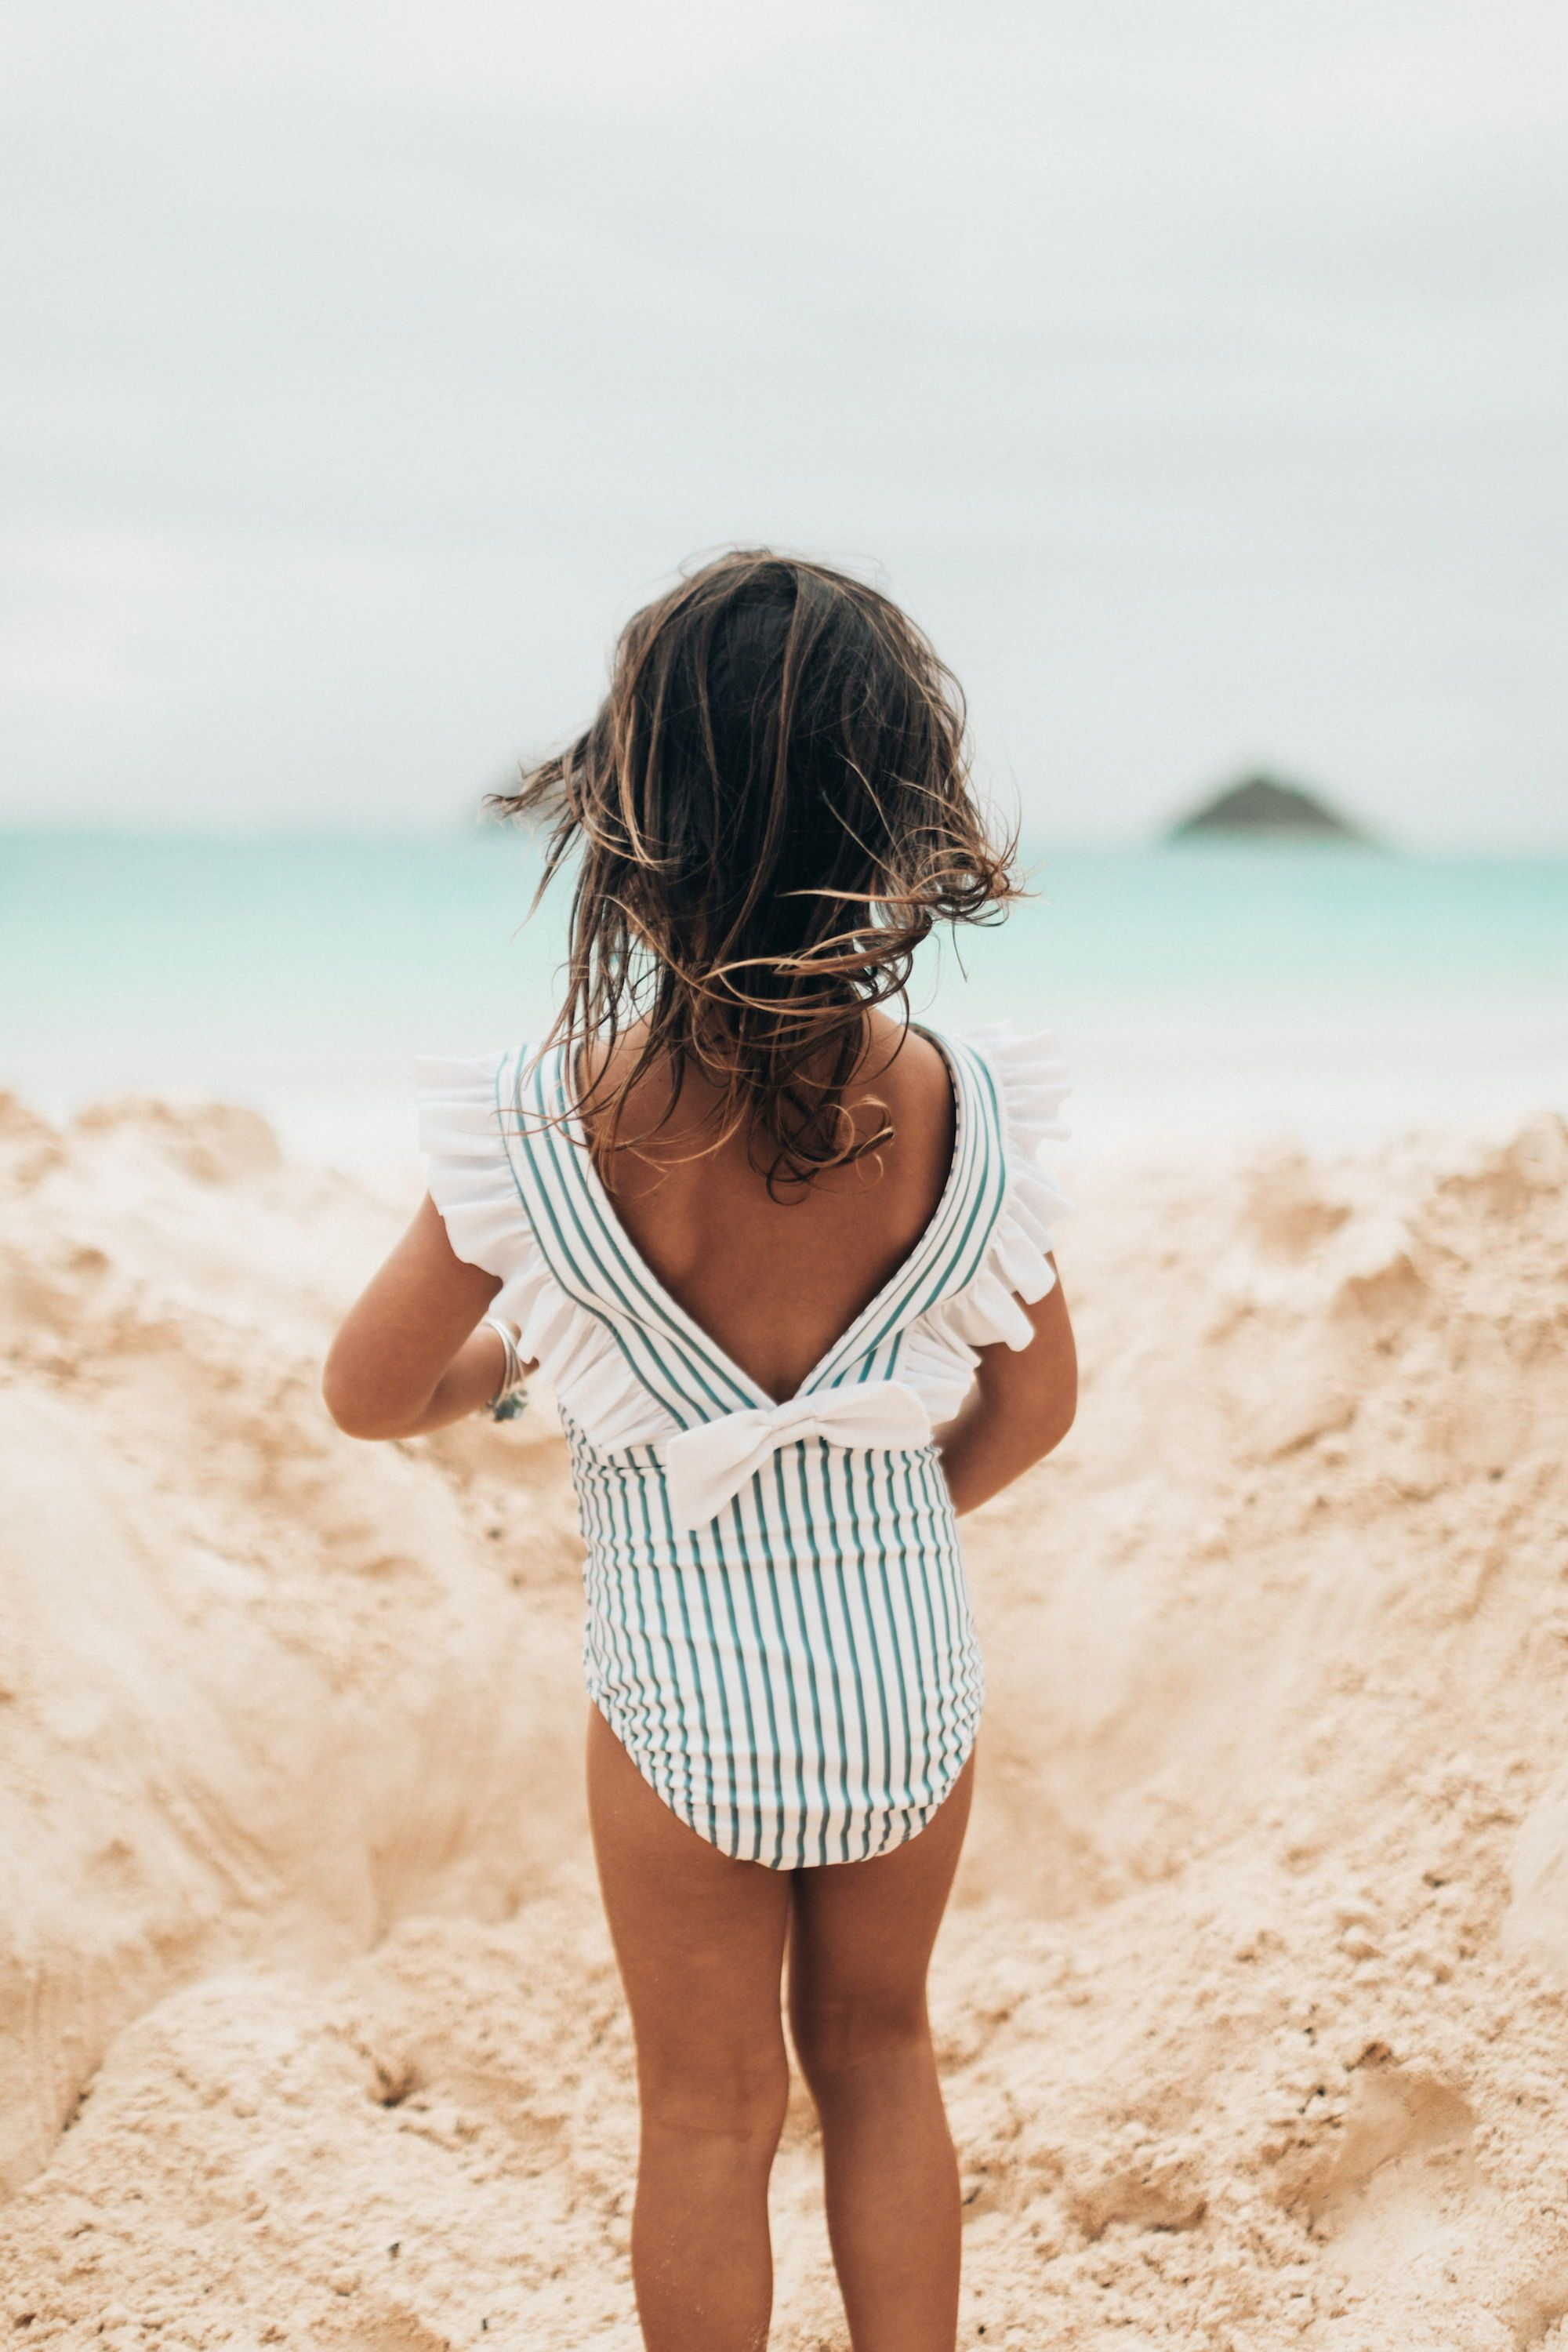 1fae1112a3b KIDS SWIMSUITS! Everyone's favorite Breezy Stripe print in a MINI Ruffle  One Piece Swimsuit! The feminine stripes combined with the fun ruffle and  bow, ...